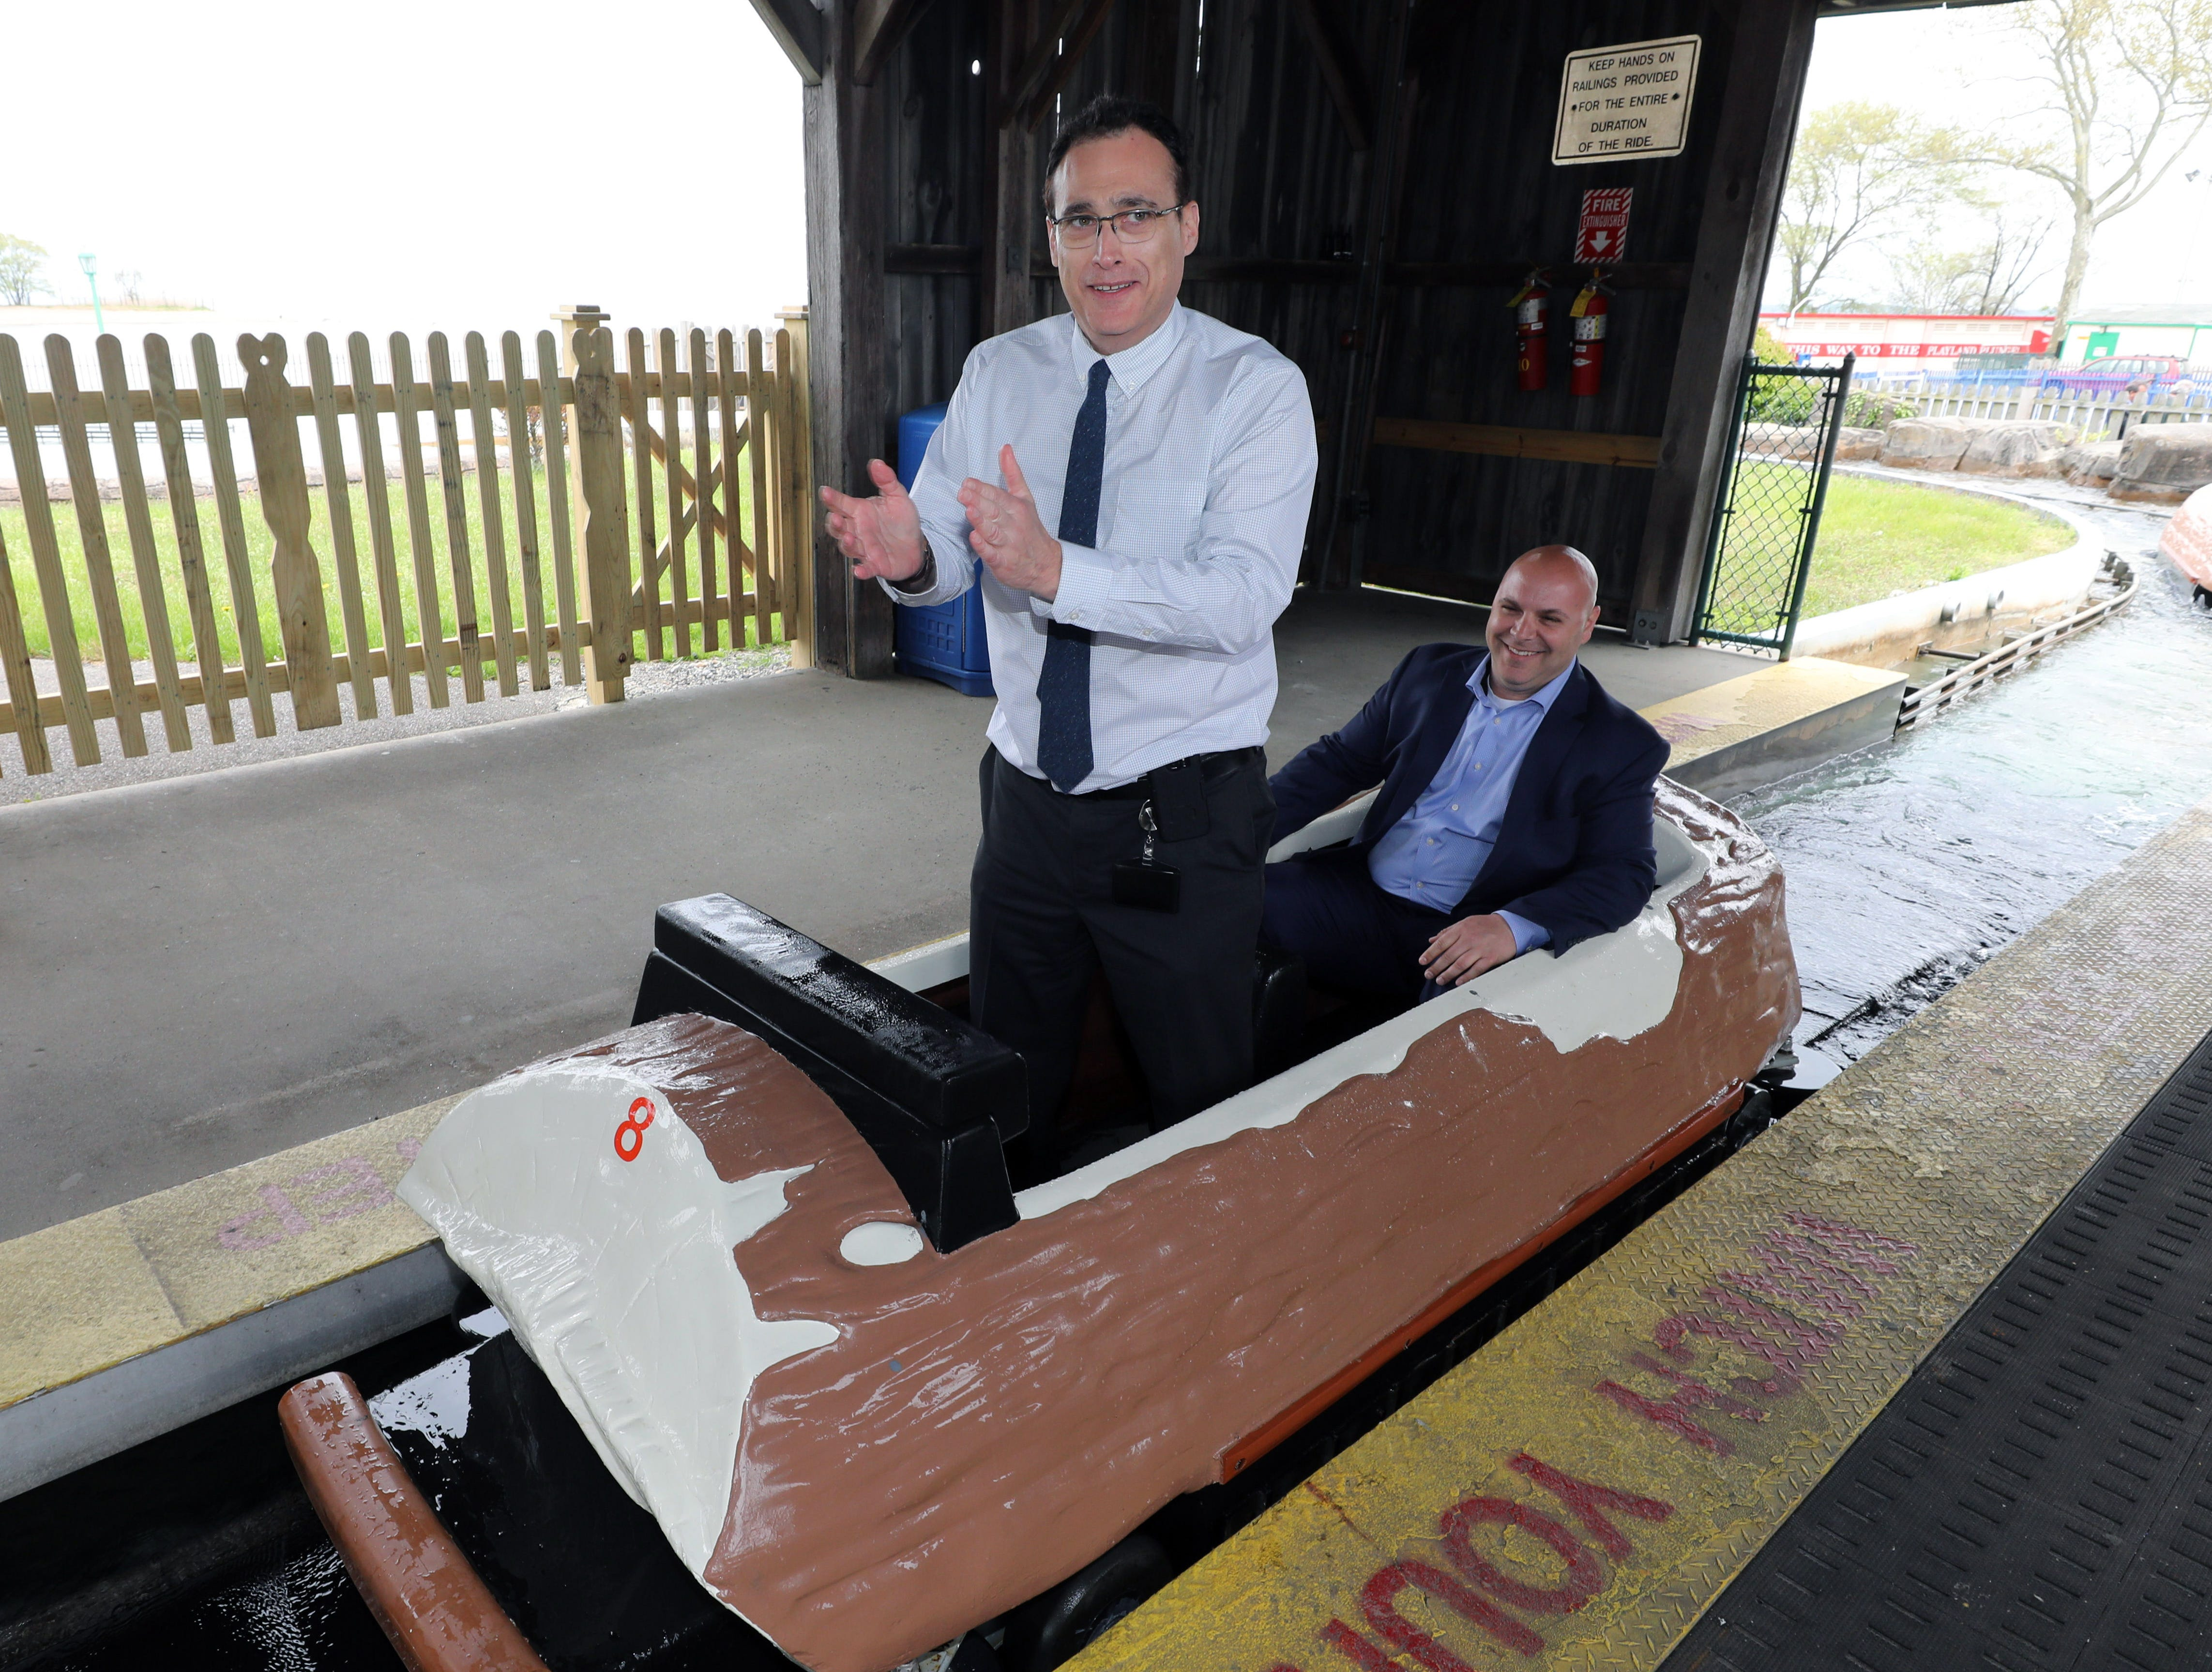 """Peter Tartaglia, the deputy commissioner of Westchester County Parks and Frank Carrieri, the general manager at Playland, board the Log Flume during a """"ride and food safety tour"""" for the media, at Playland in Rye, May 9, 2019."""